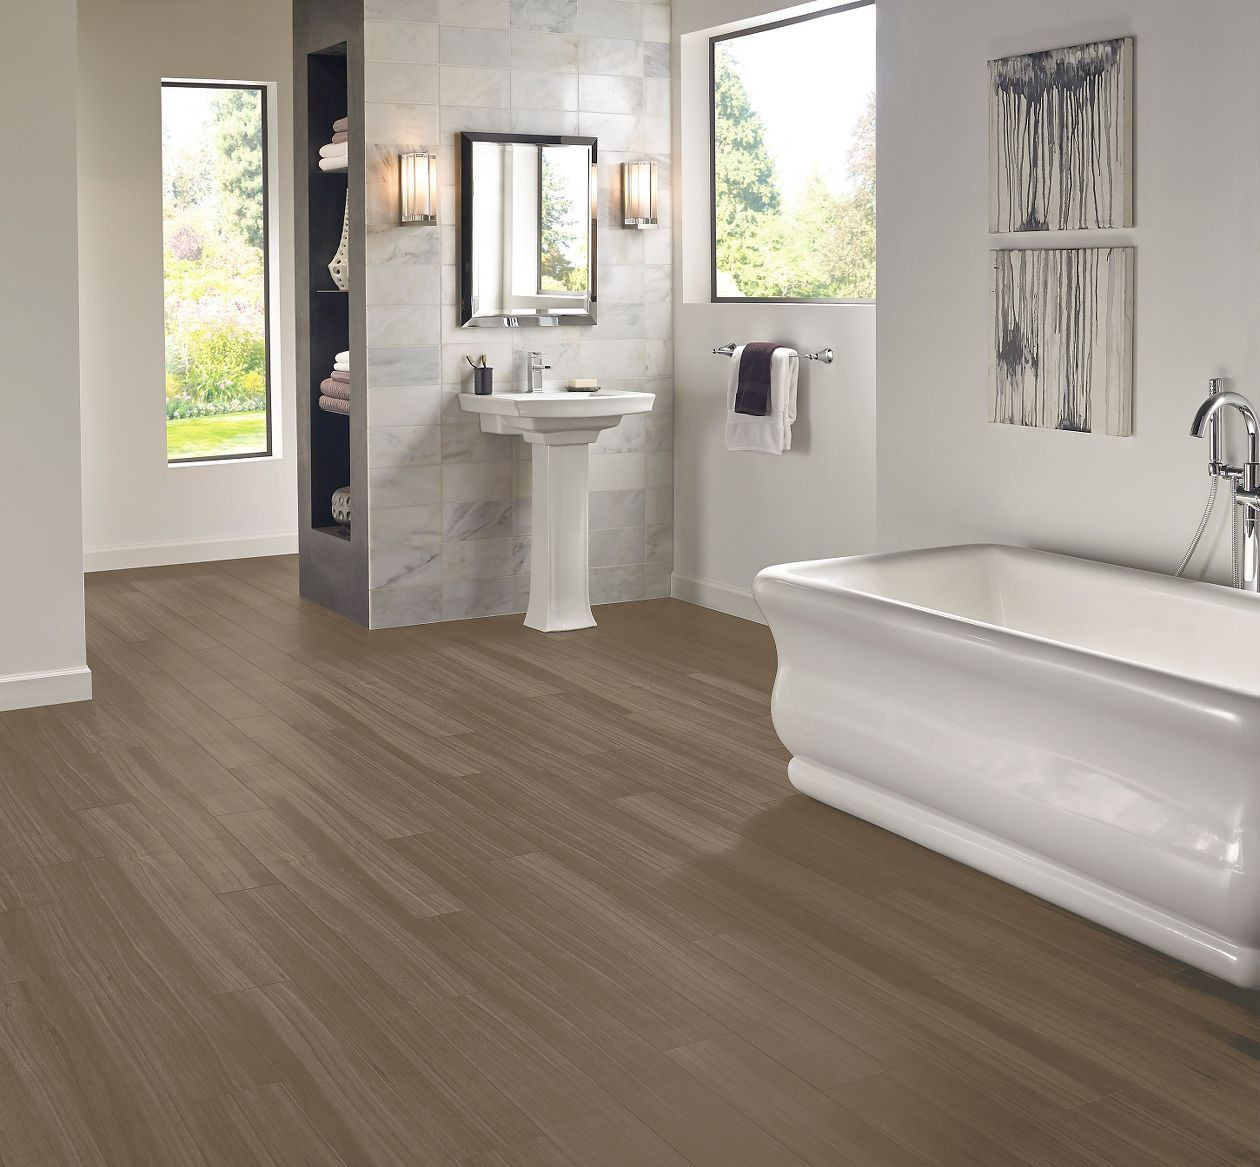 empire today hardwood floor cost of armstrong luxe empire walnut flint gray 8mm x 6 x 48 our floors regarding armstrong luxe empire walnut flint gray 8mm x 6 x 48 with rigid core